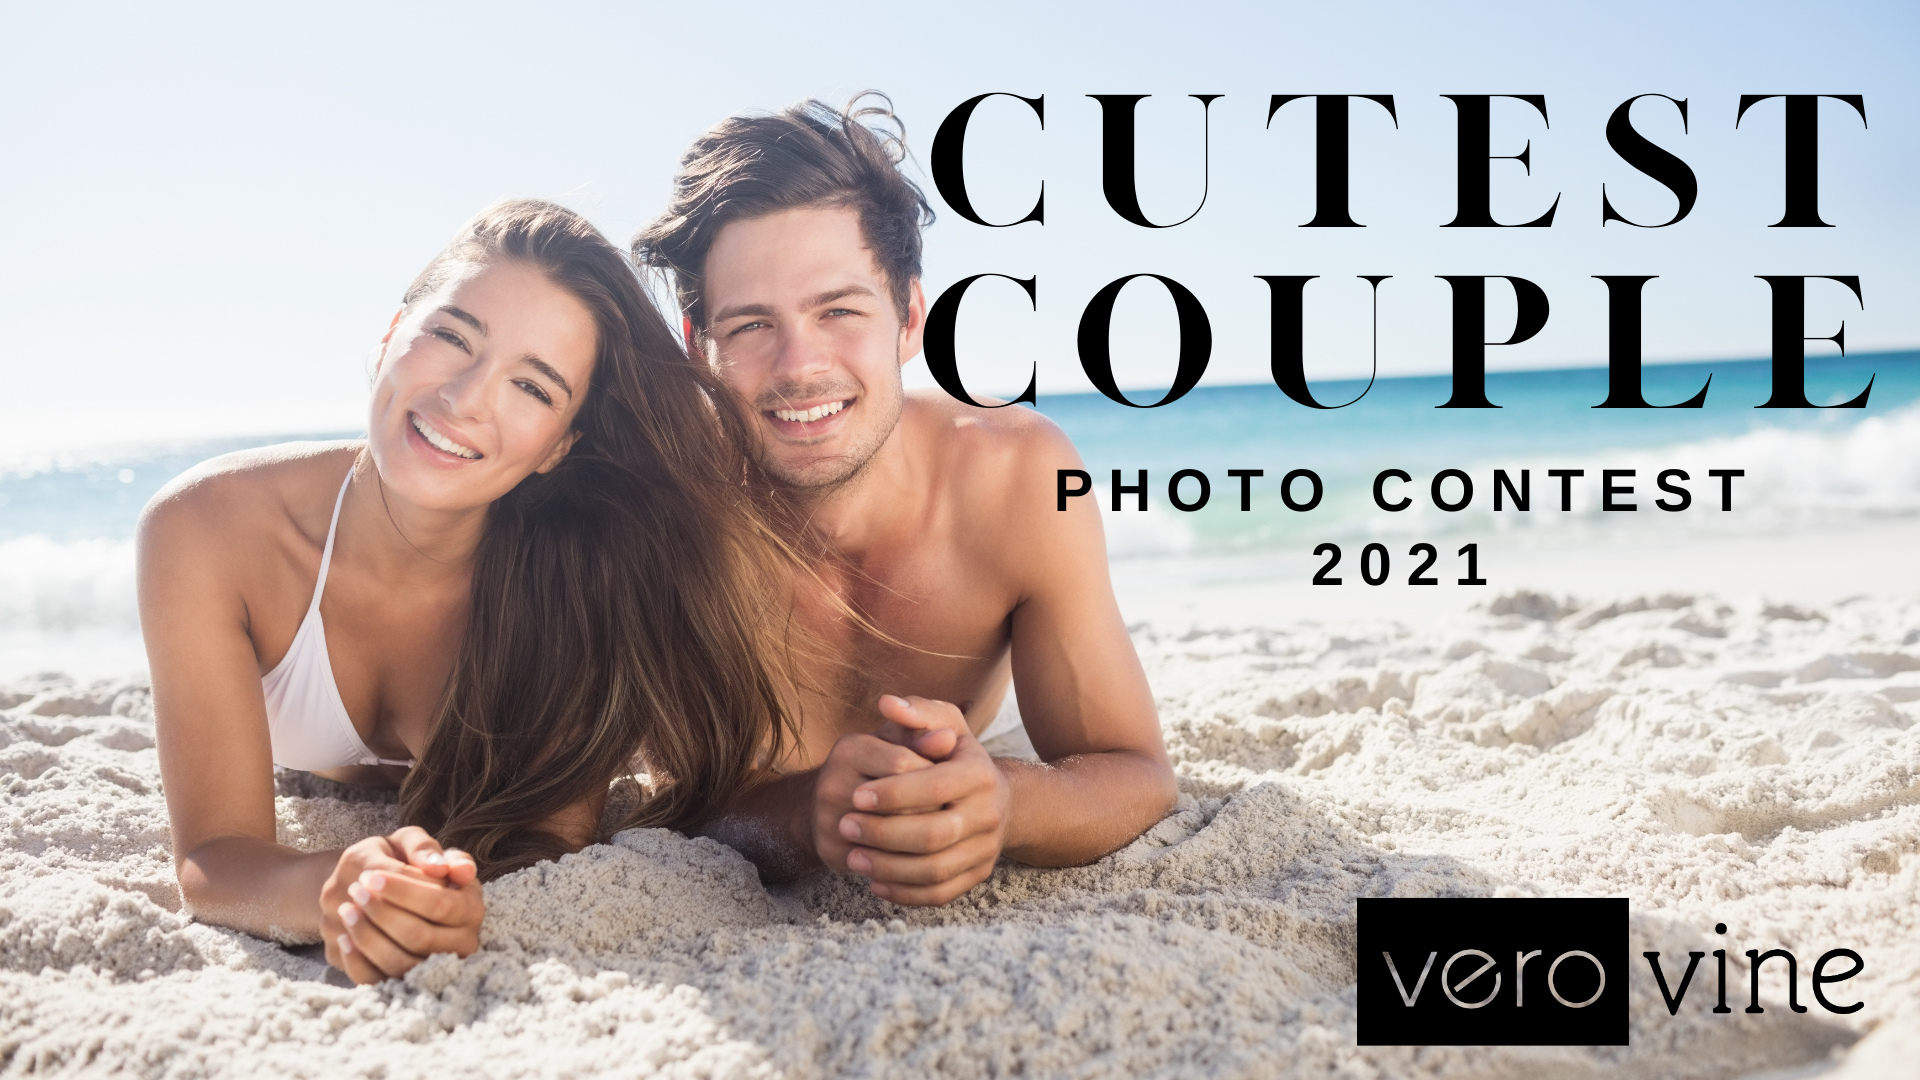 Cutest Couple Photo Contest 2021